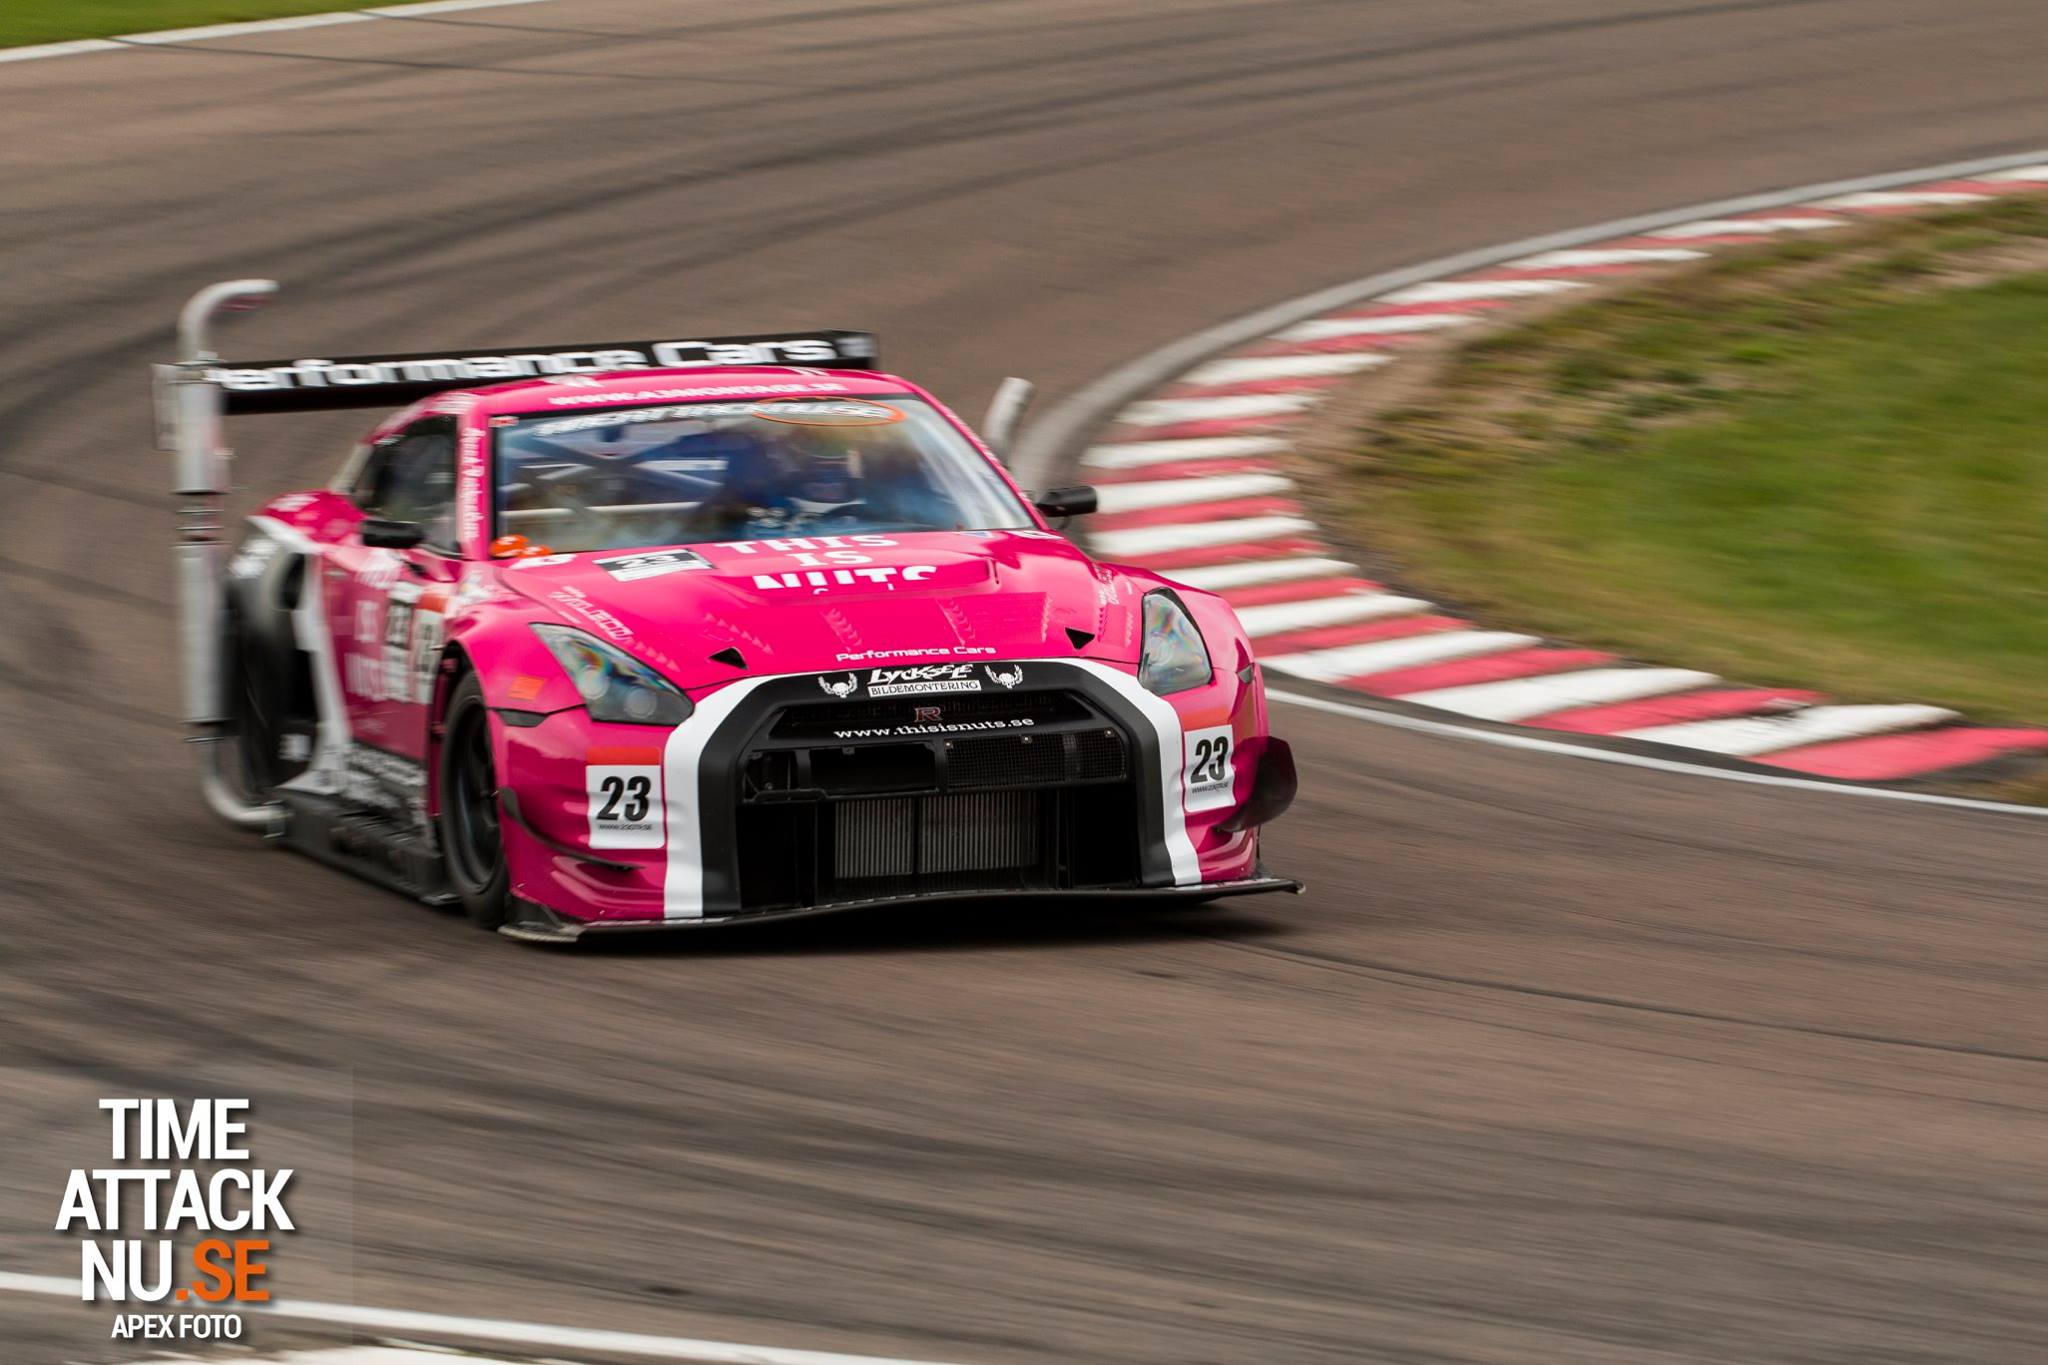 Nissan Gt R Racecar Competes With Random Exhaust Pipes To Meet